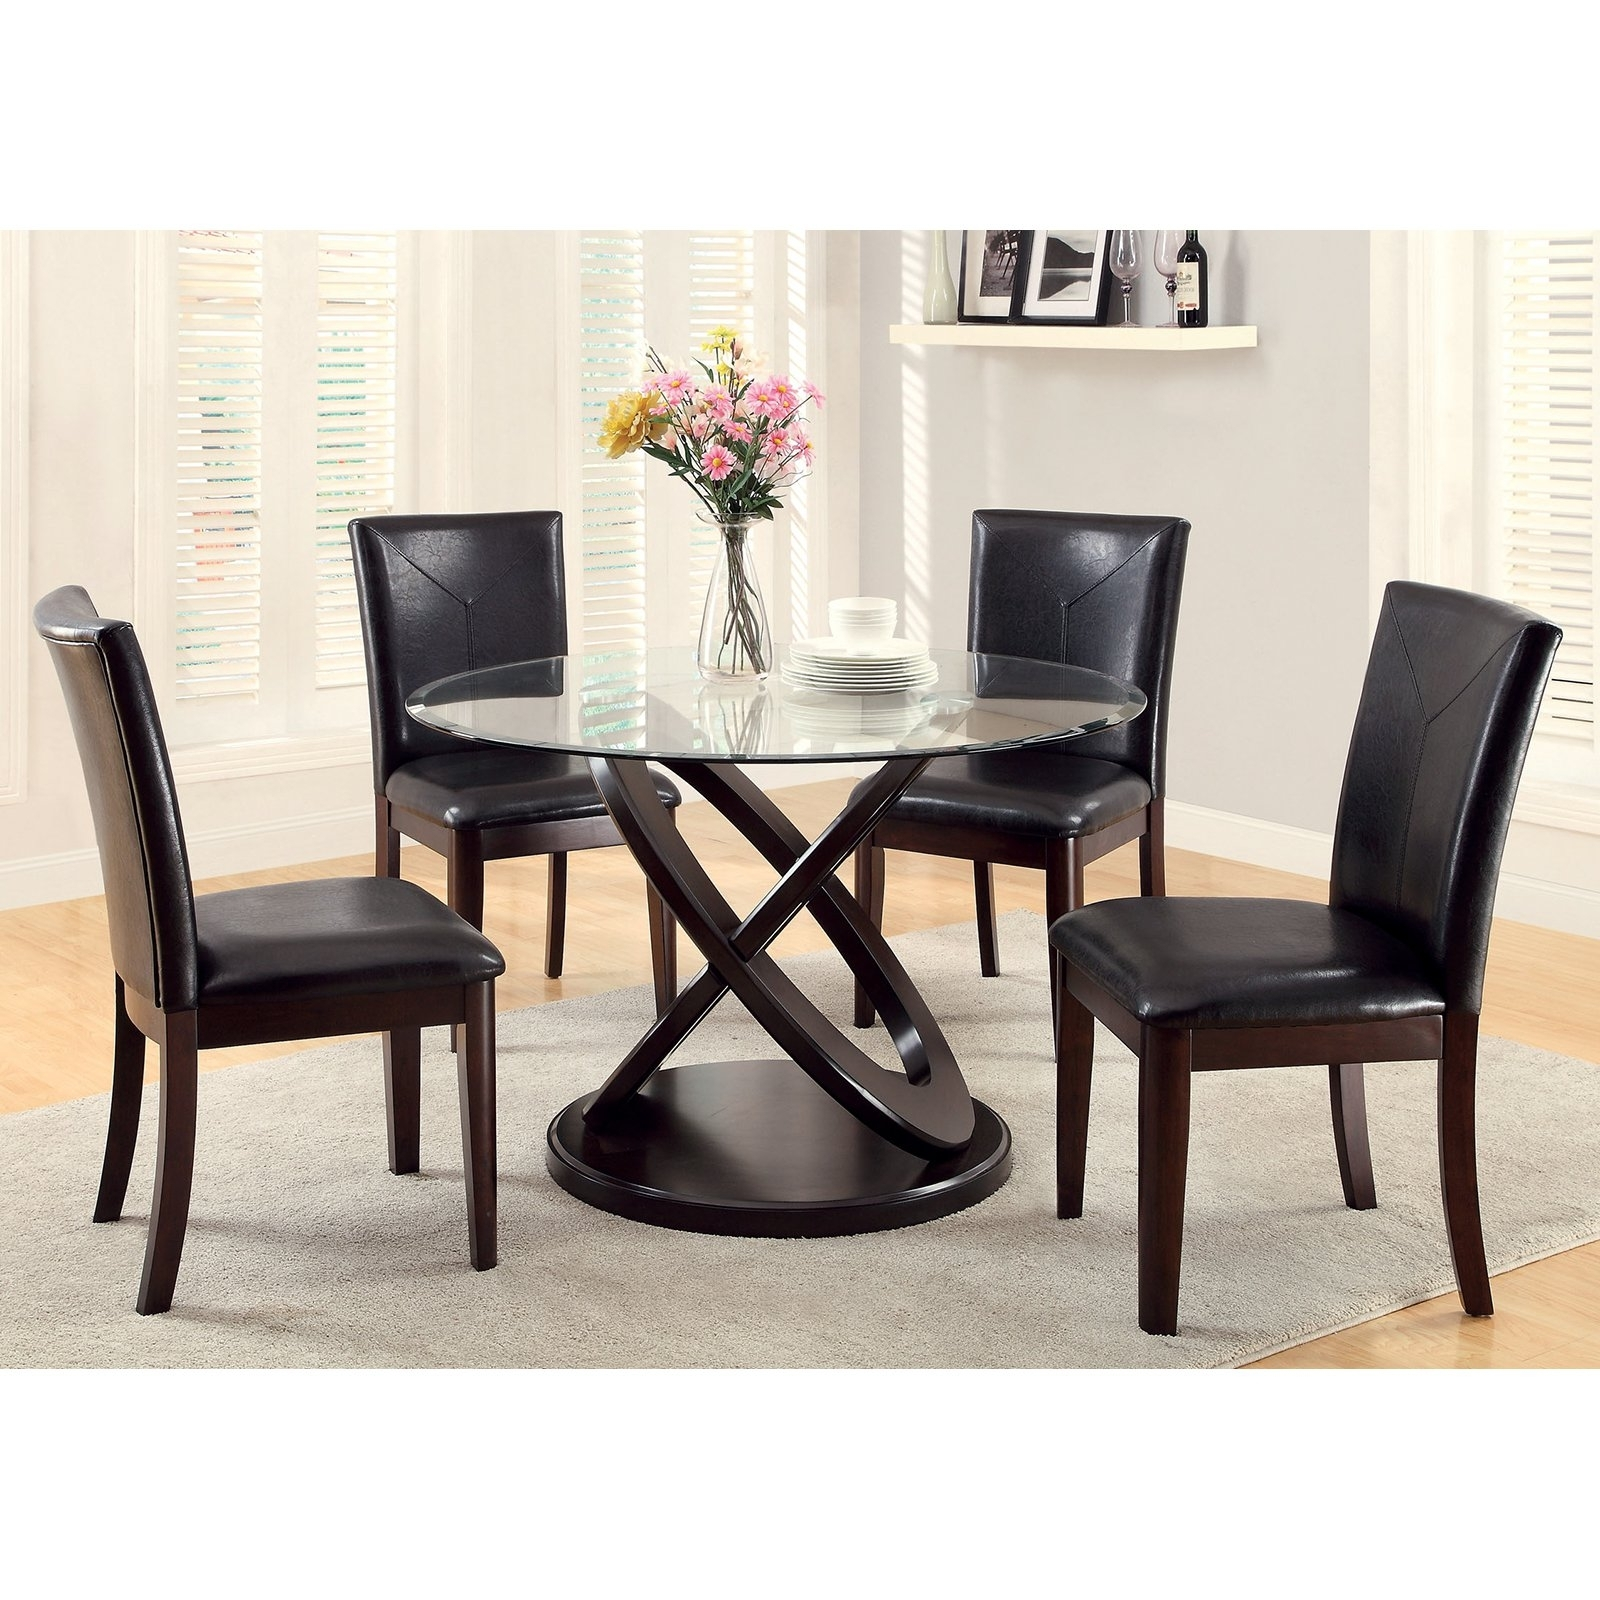 Latest Dining Tables Sets Intended For Furniture Of America Ollivander 5 Piece Glass Top Dining Table Set (View 15 of 25)